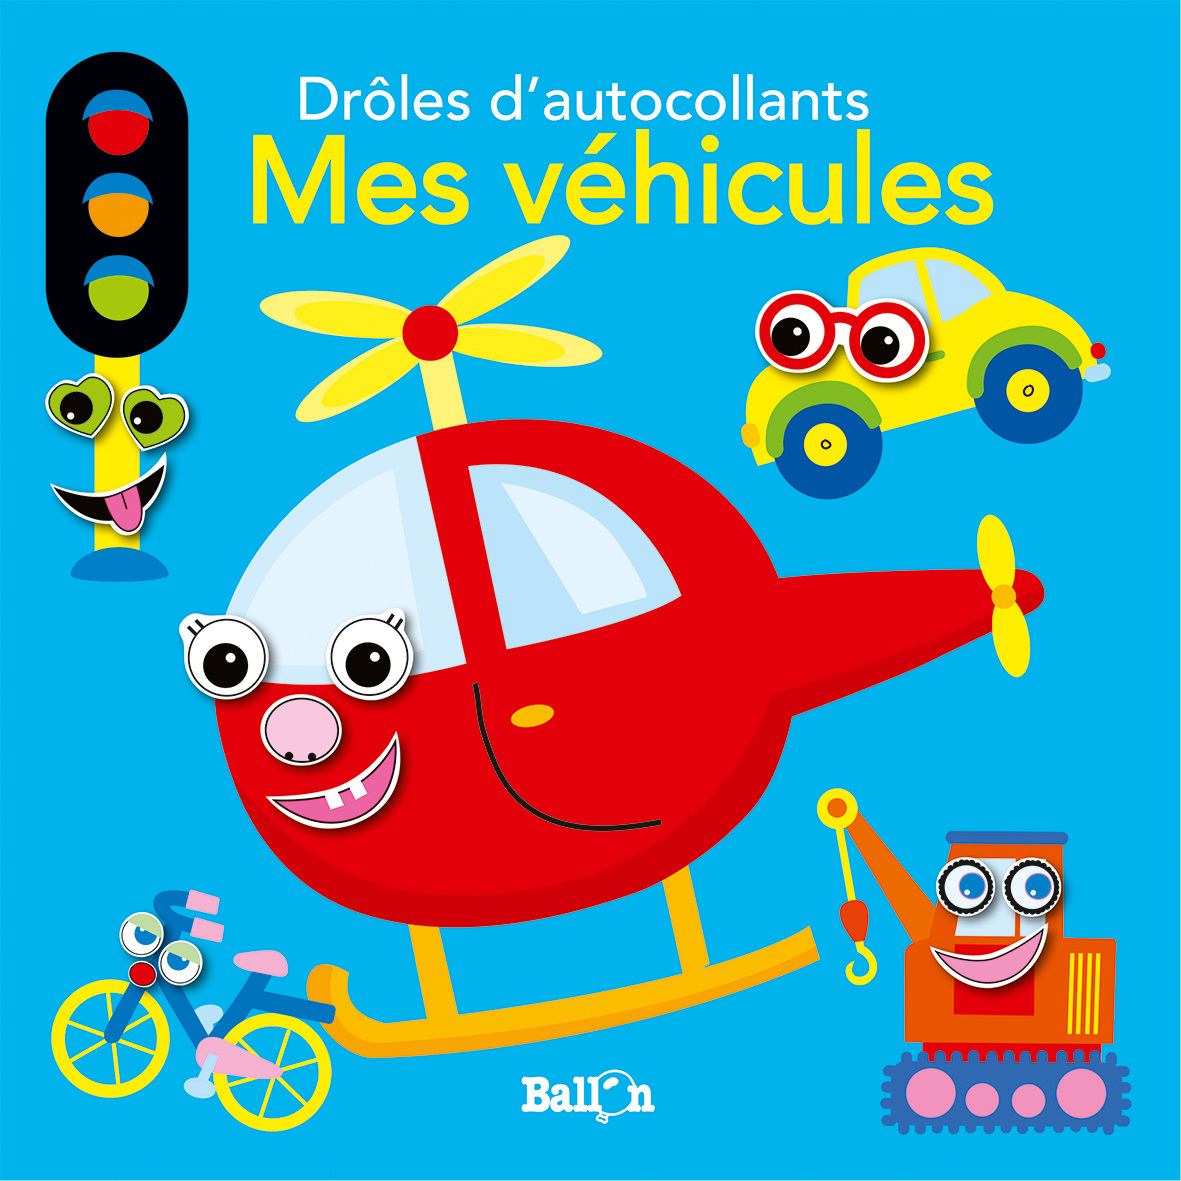 MES VEHICULES